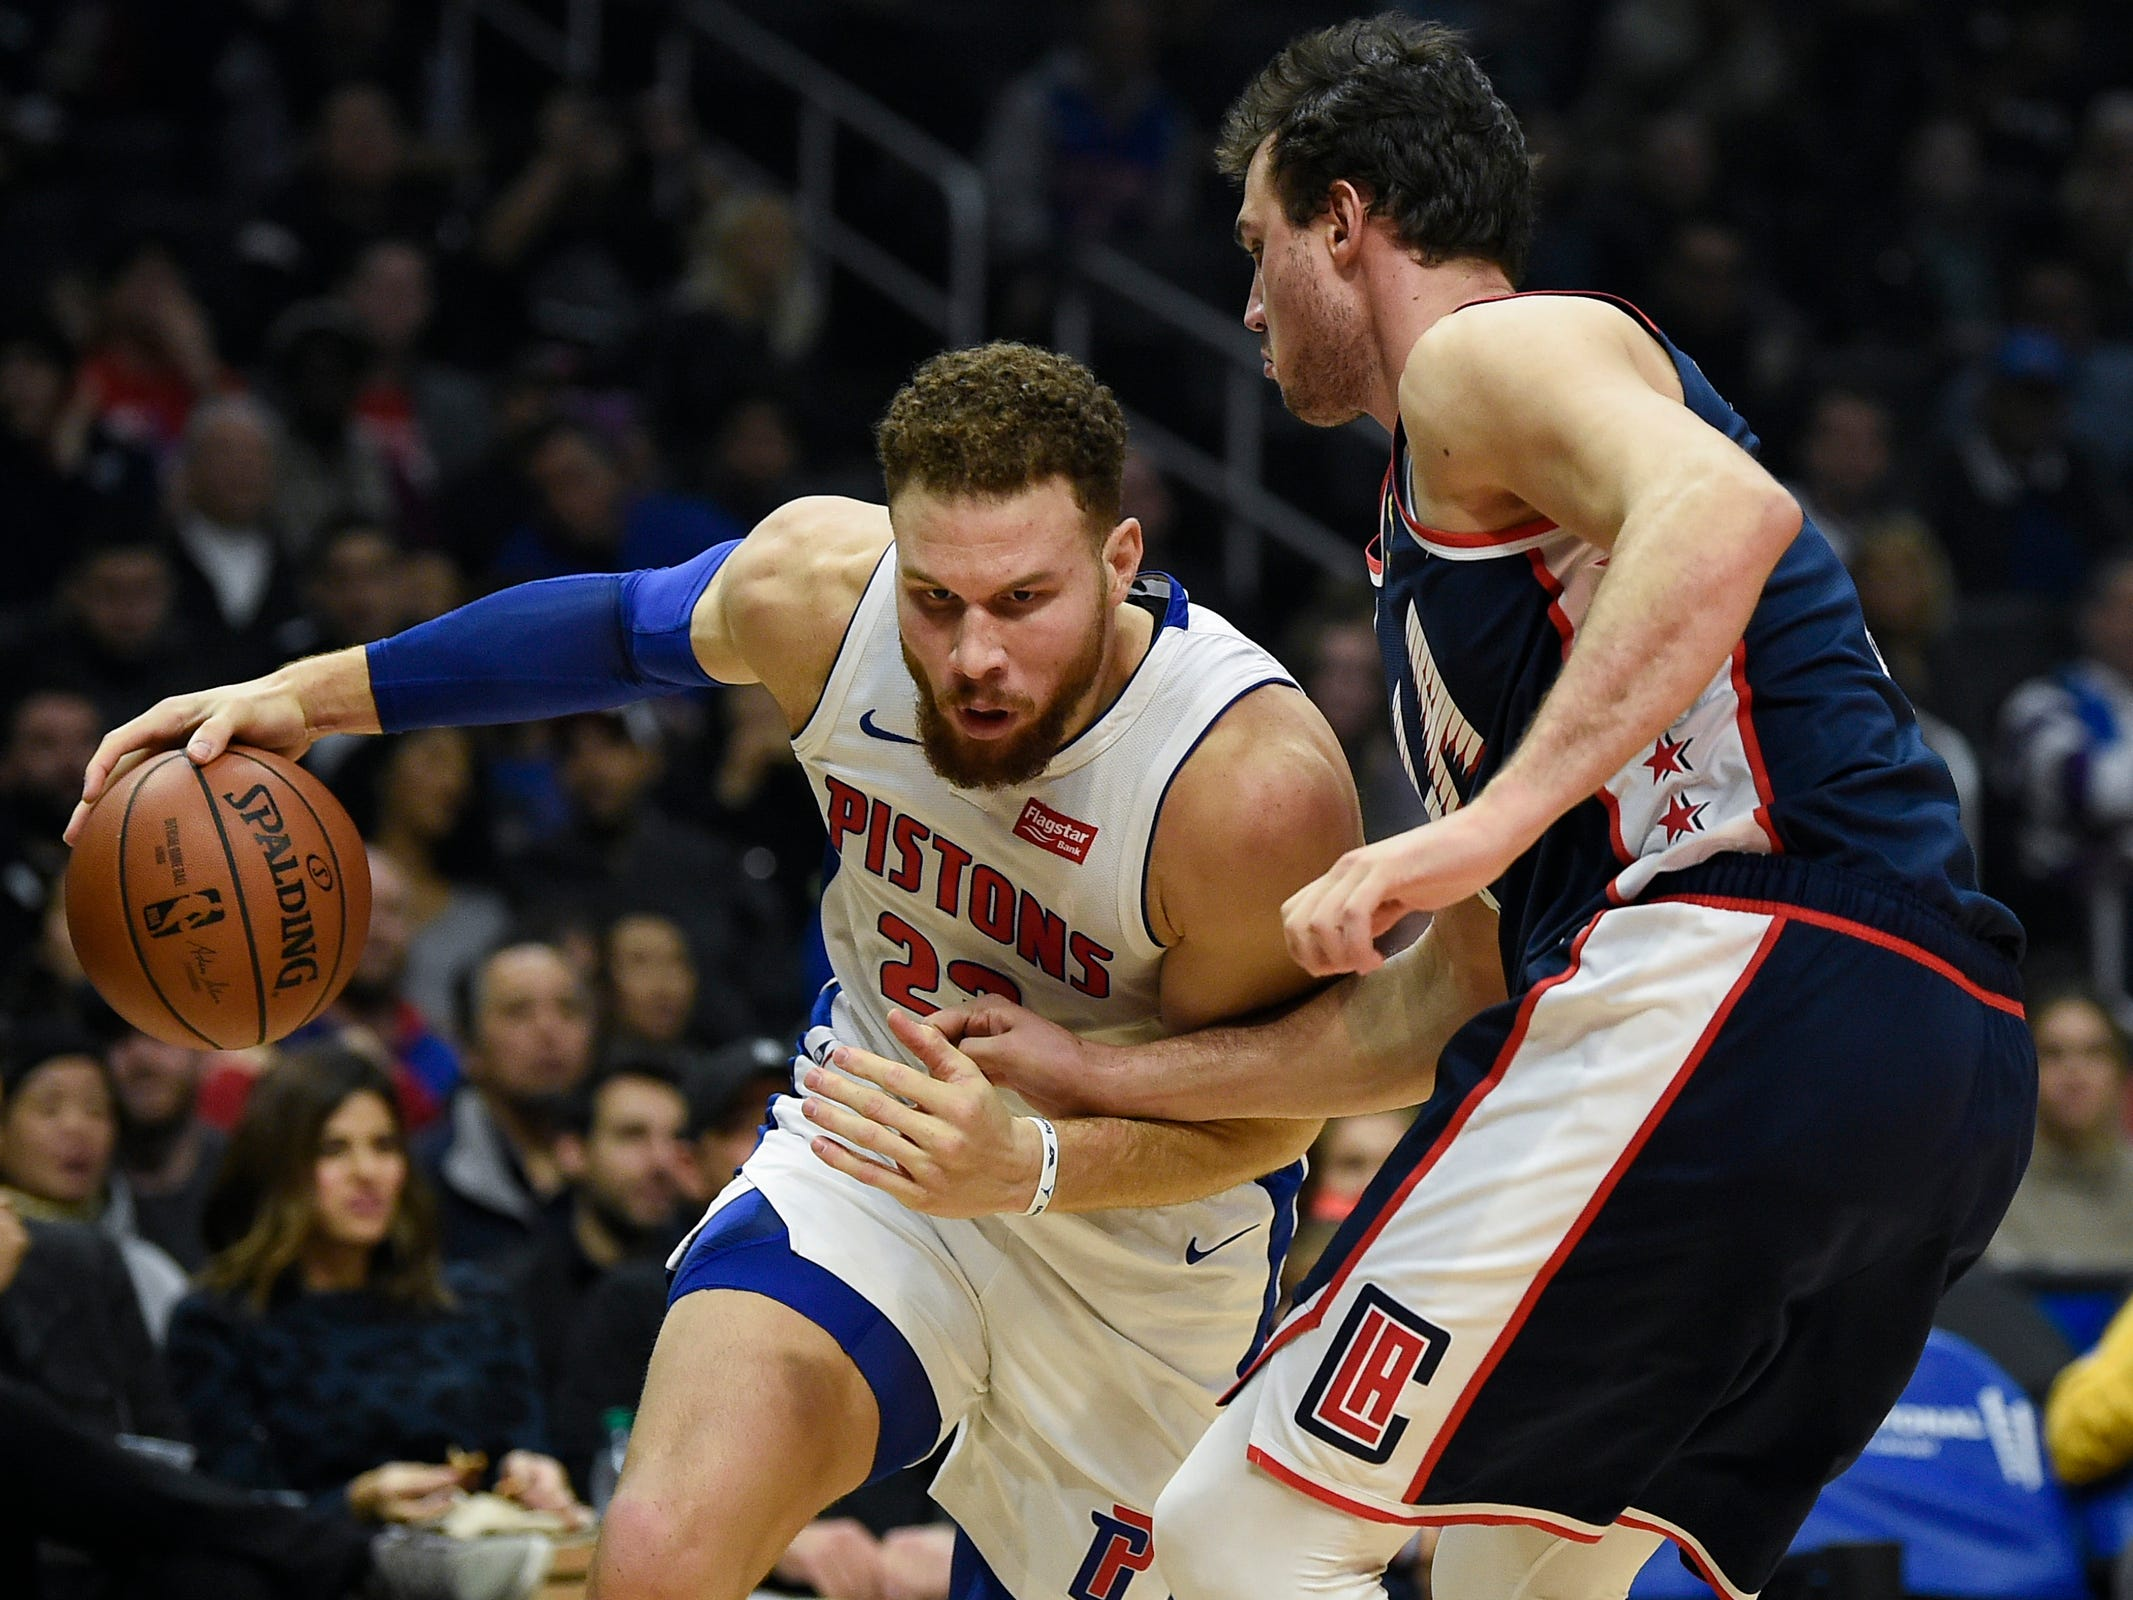 Pistons forward Blake Griffin drives to the basket defended by Clippers forward Danilo Gallinari during the first quarter on Saturday, Jan. 12, 2019, in Los Angeles.